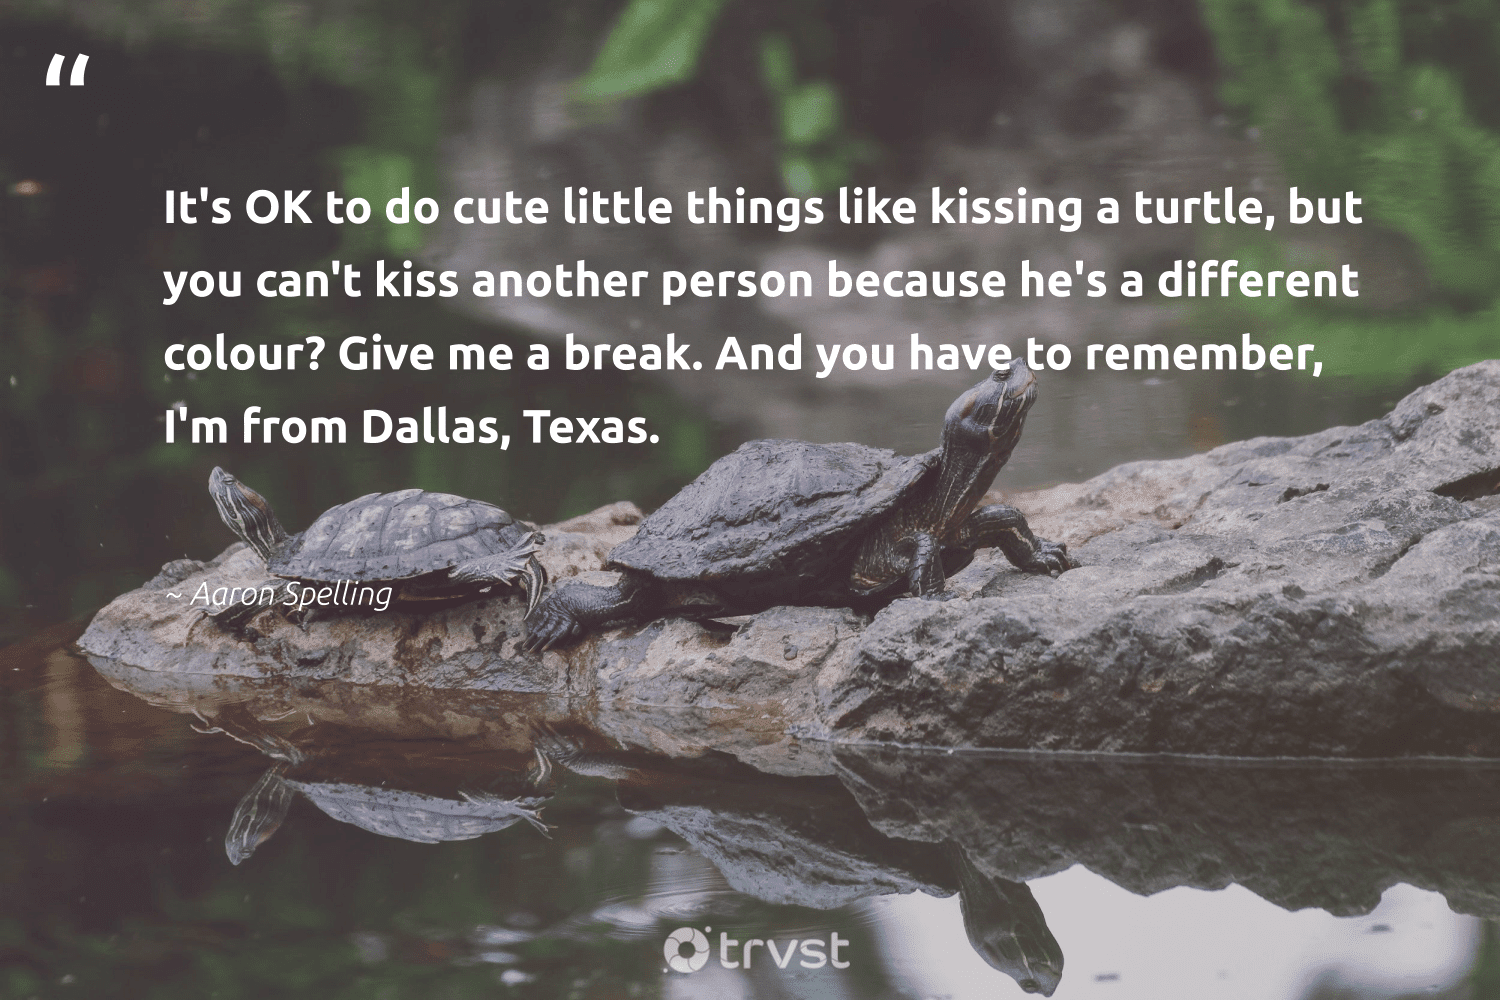 """""""It's OK to do cute little things like kissing a turtle, but you can't kiss another person because he's a different colour? Give me a break. And you have to remember, I'm from Dallas, Texas.""""  - Aaron Spelling #trvst #quotes #turtle #turtles #collectiveaction #savetheturtle #dogood #wildlife #thinkgreen #oceanconservation #ecoconscious #biodiversity"""